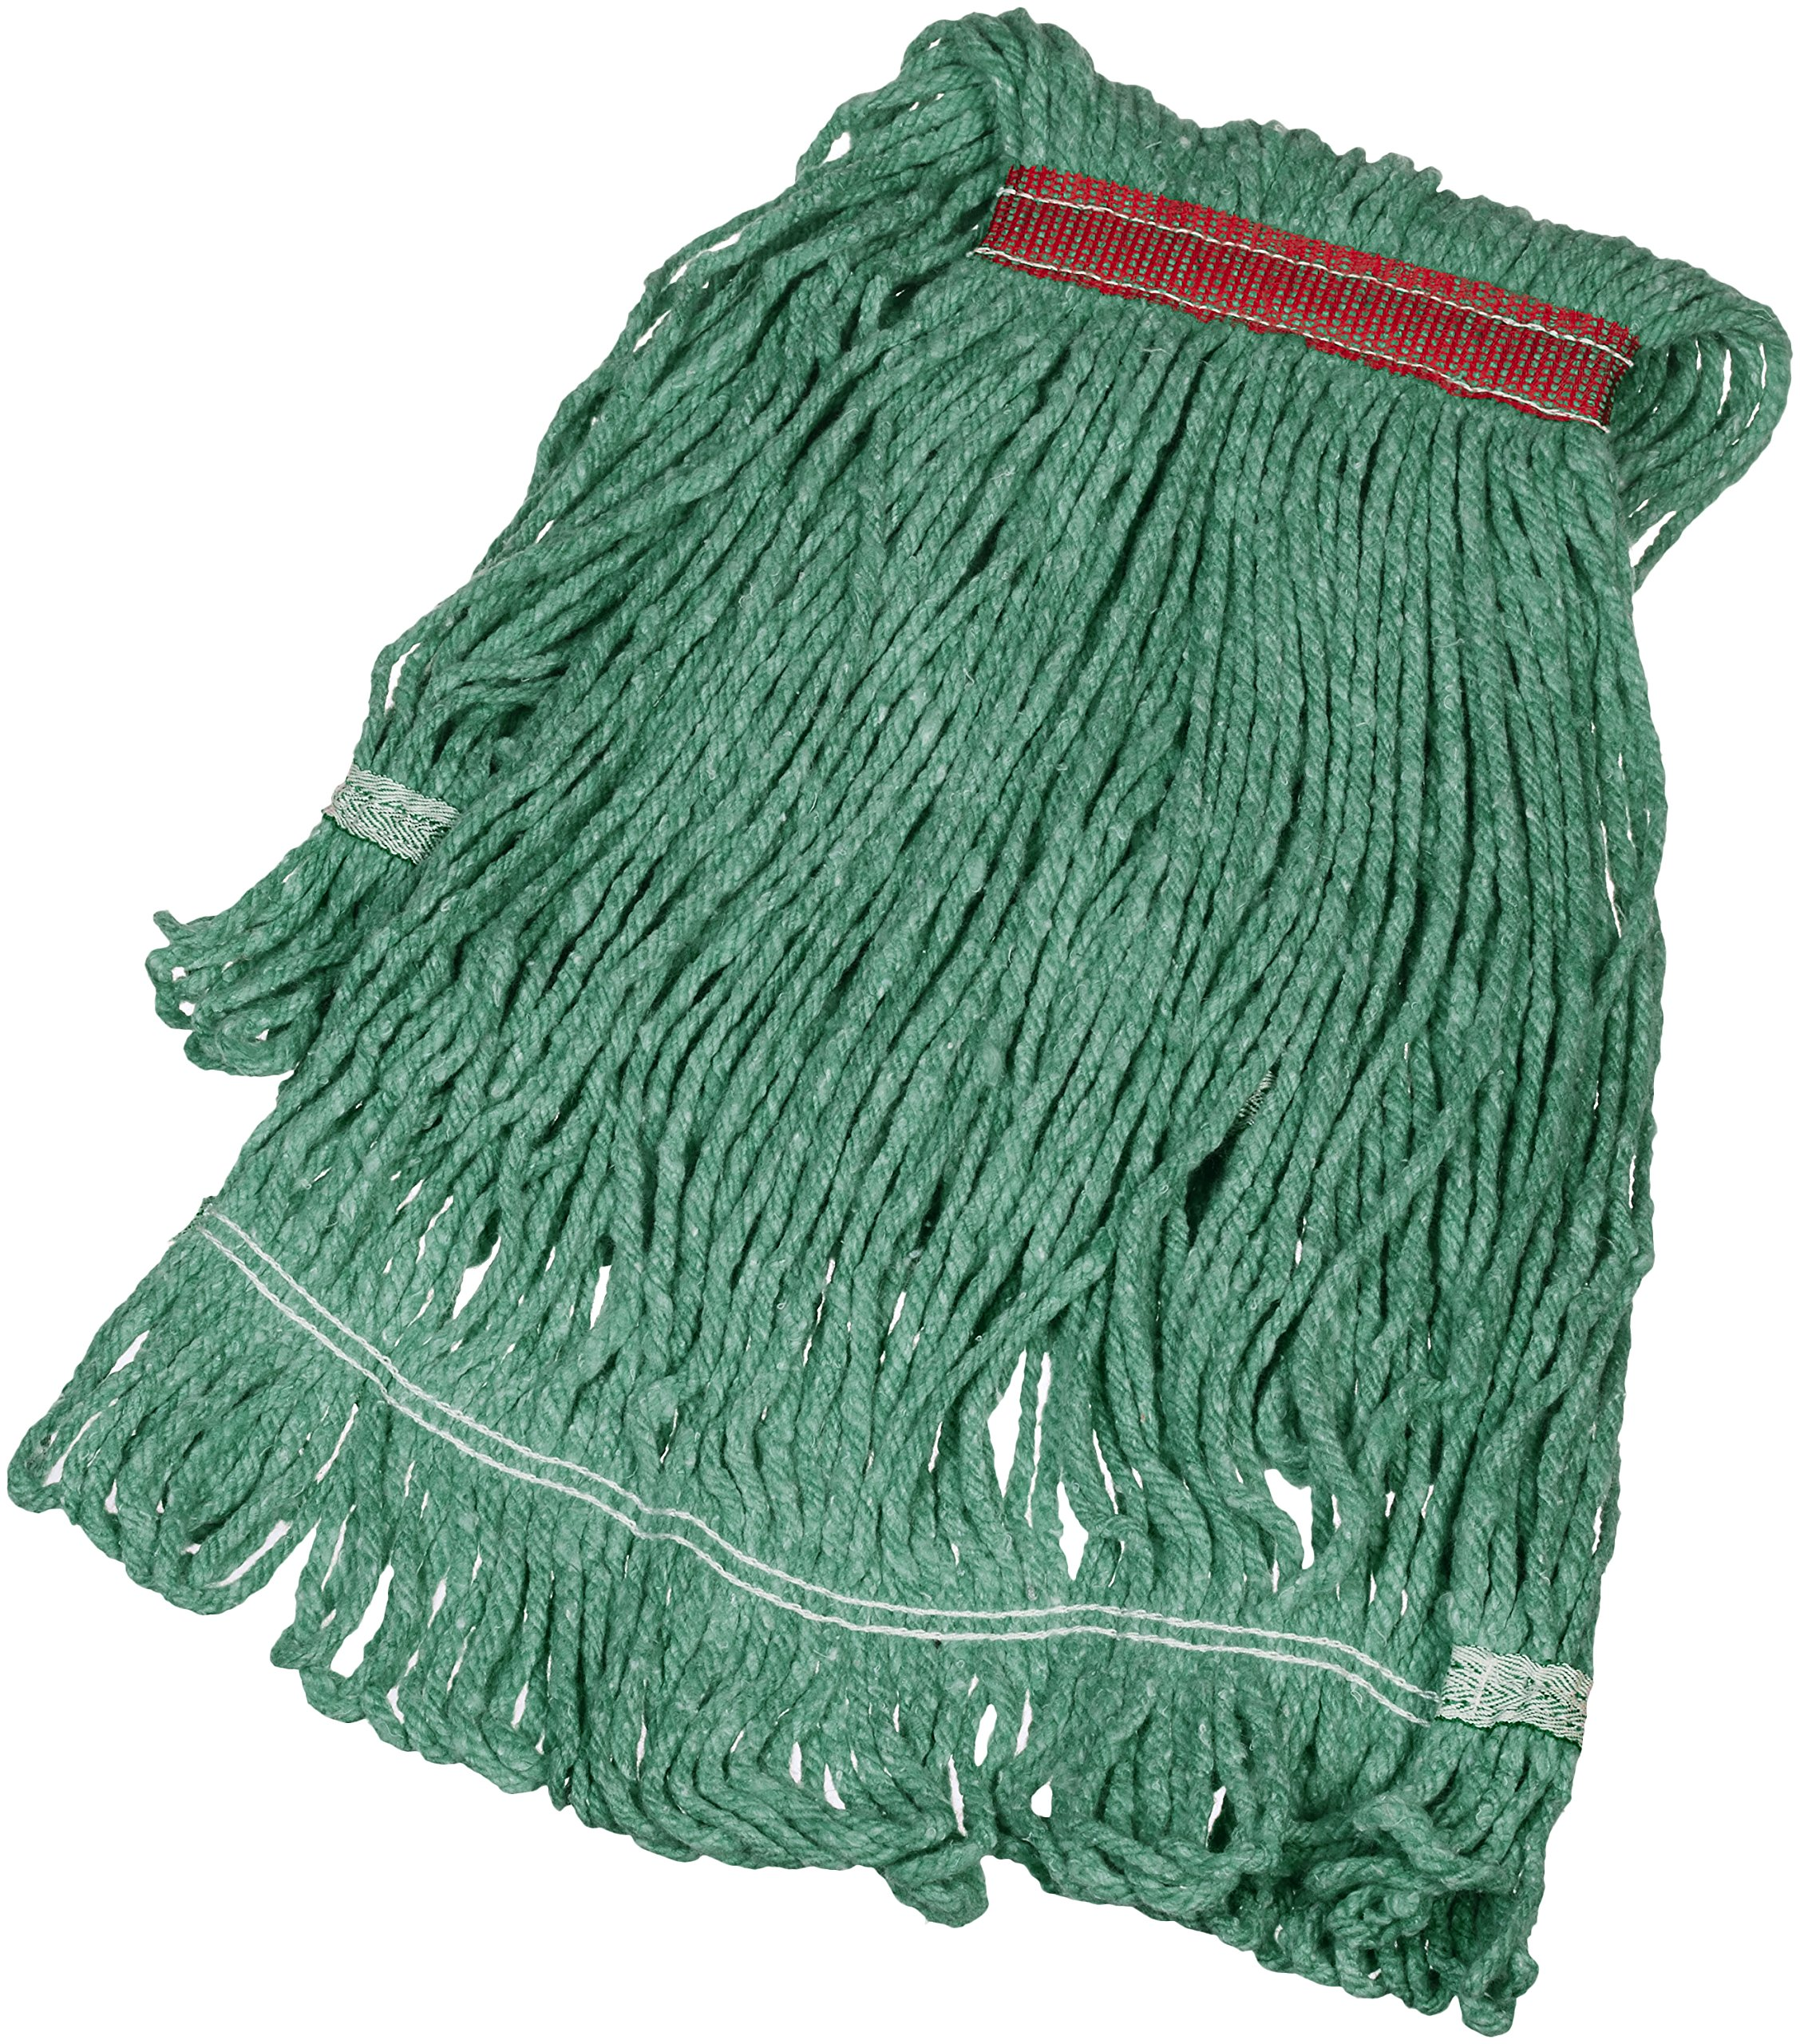 AmazonBasics Loop-End Synthetic Mop Head, 1.25-Inch Headband, Medium, Green - 6-Pack